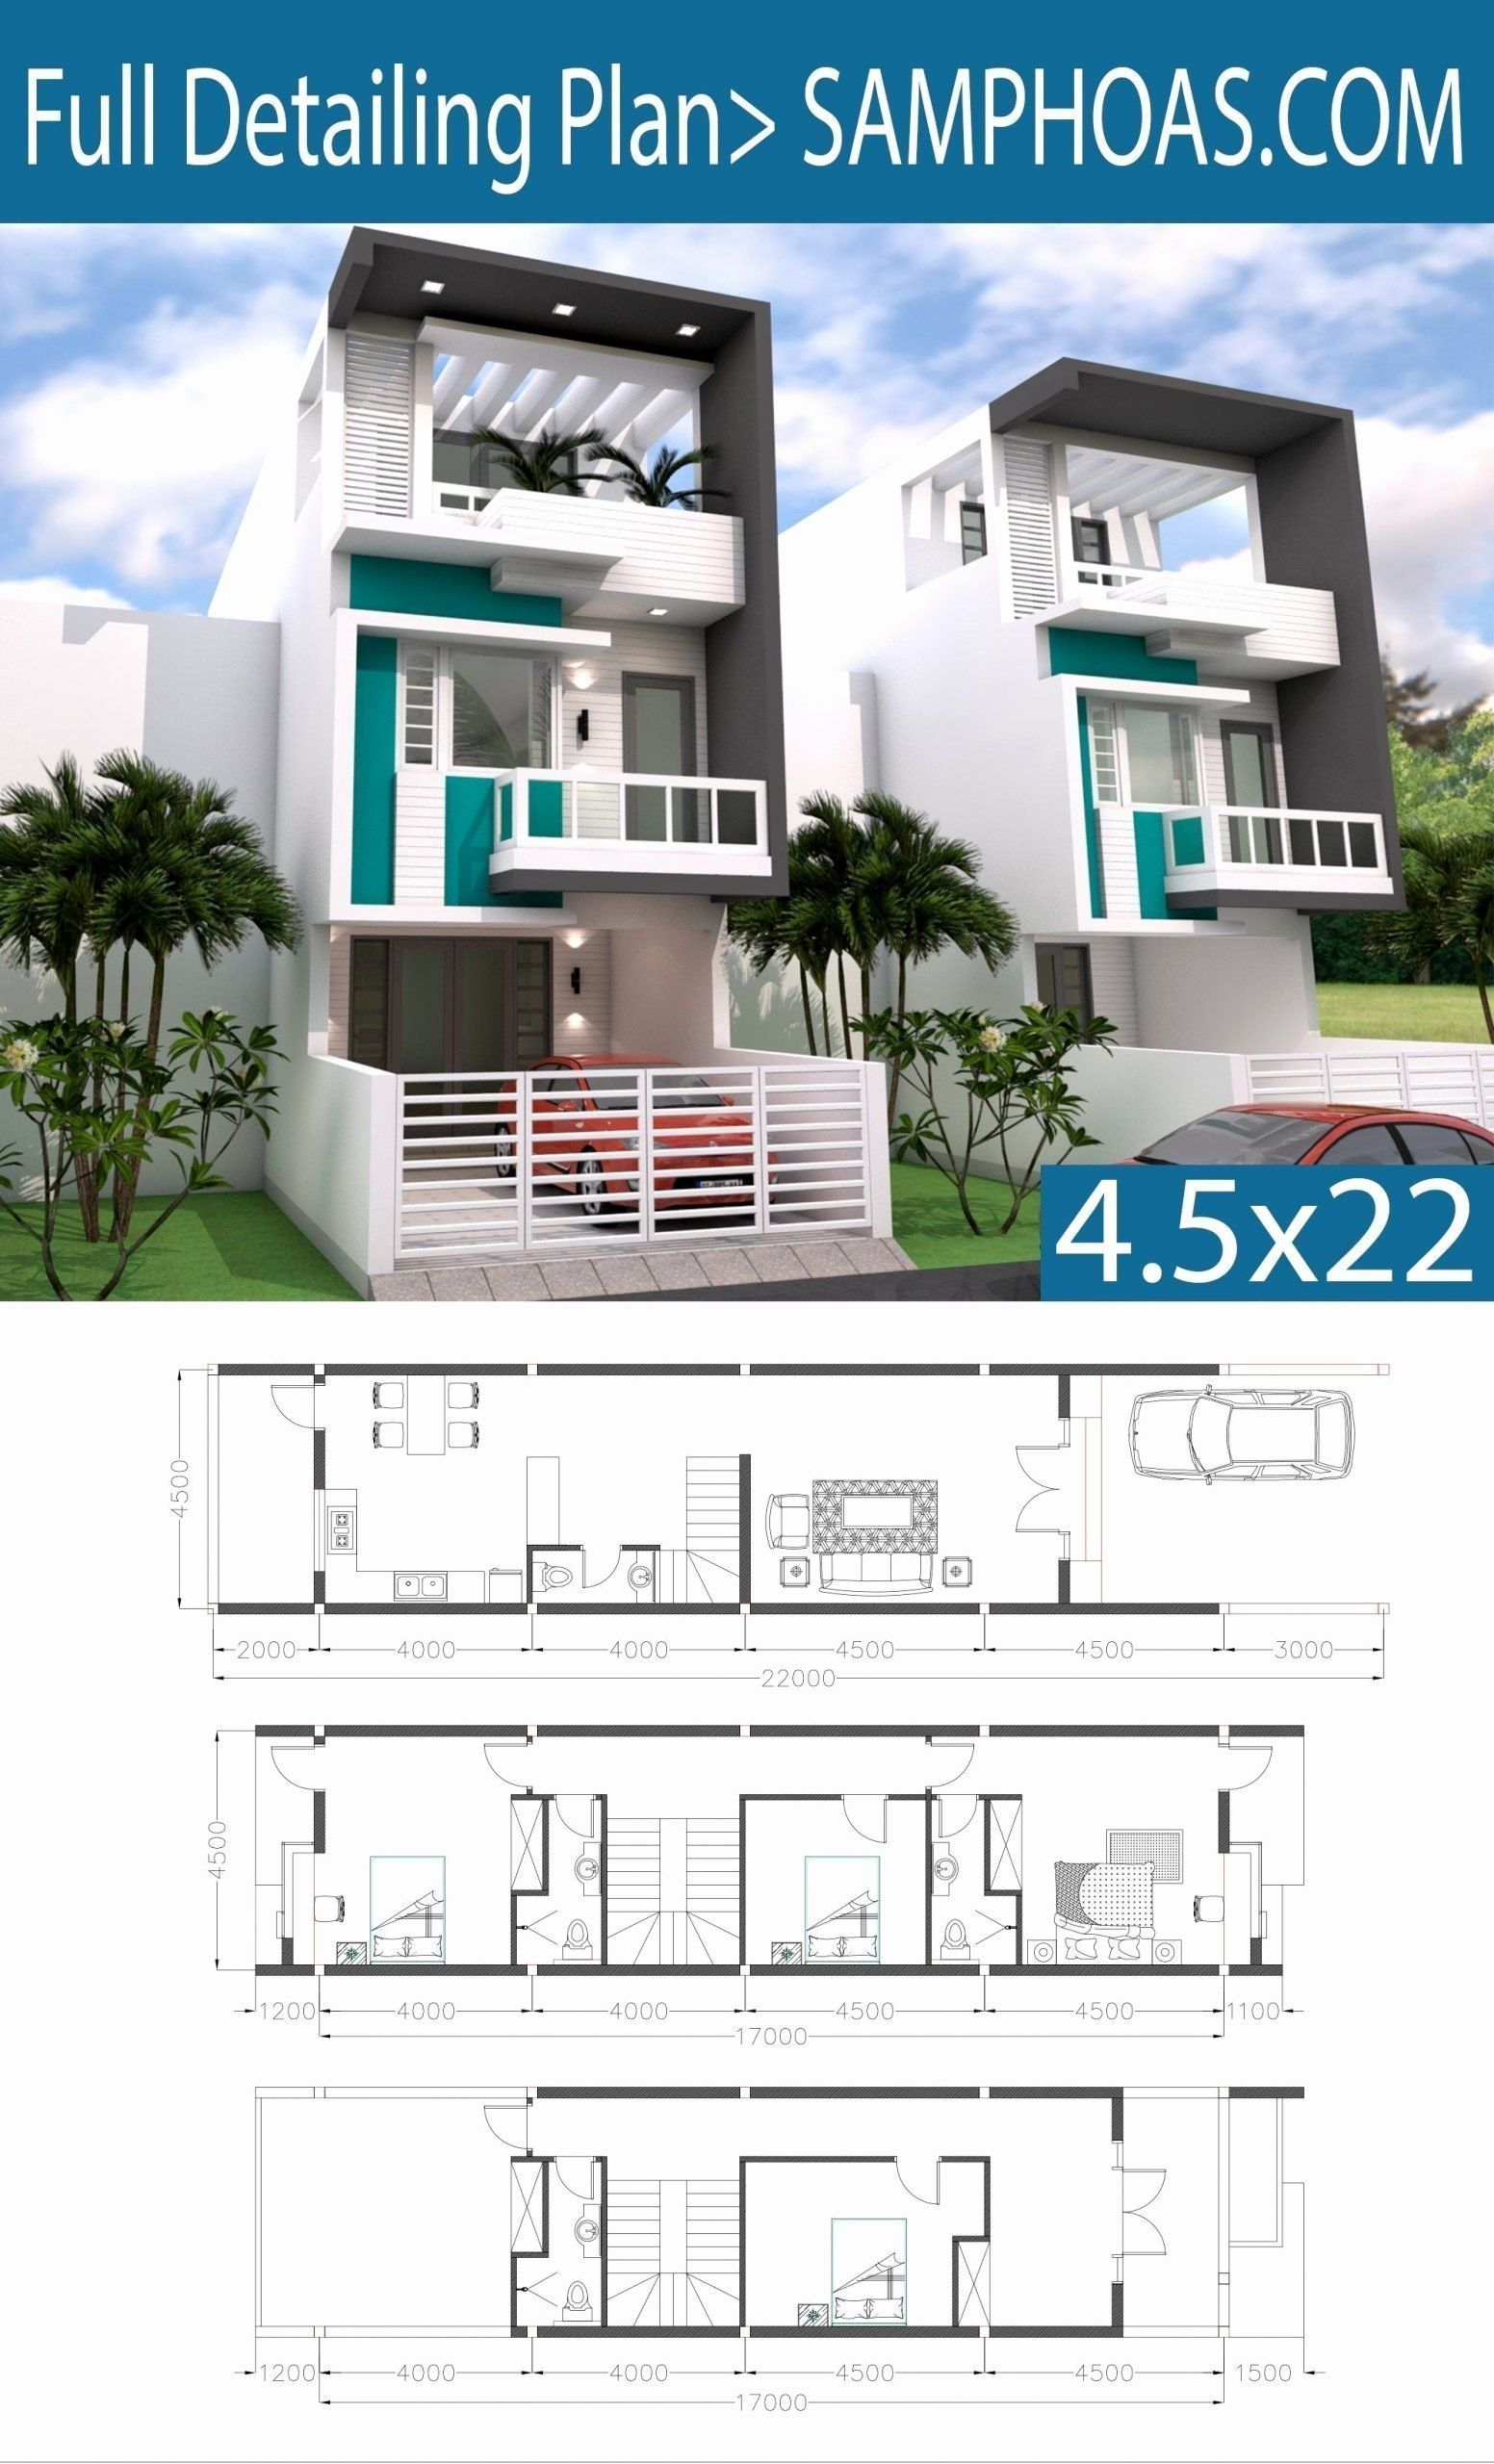 Narrow Home Design Plans Beautiful Sketchup 3 Story Narrow Home Plan 4 5x20m Samphoas Plan Narrow House Plans Architectural House Plans Model House Plan